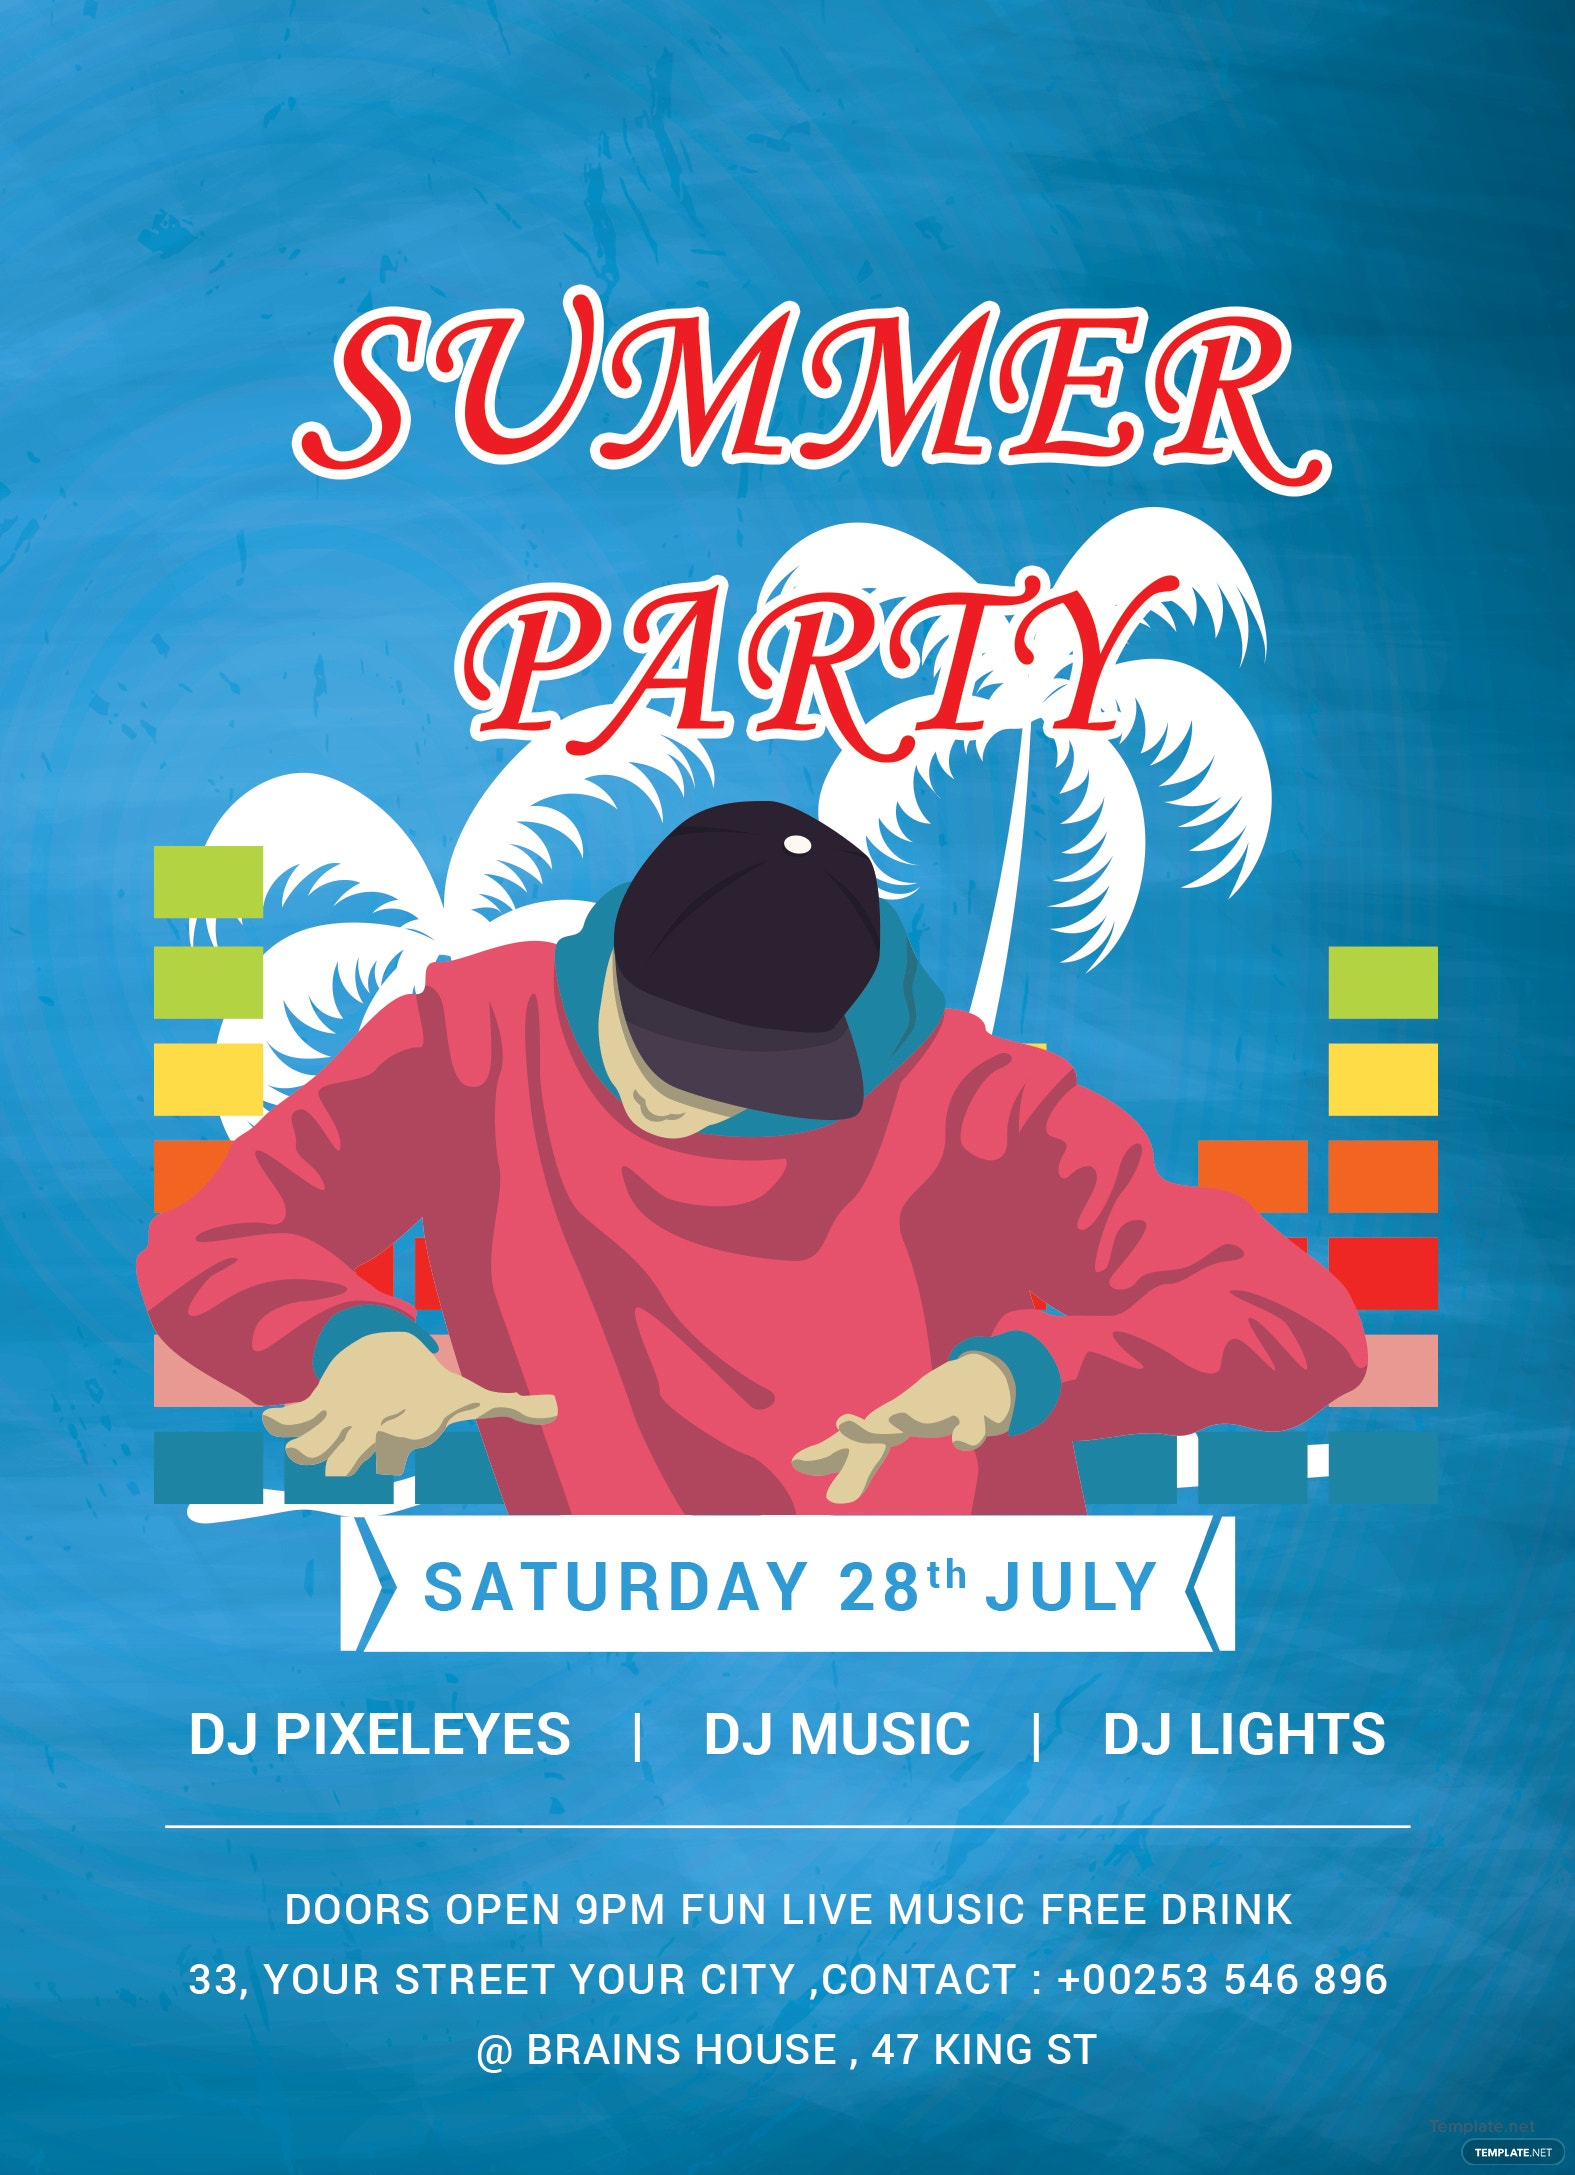 free dj summer party invitation template in adobe